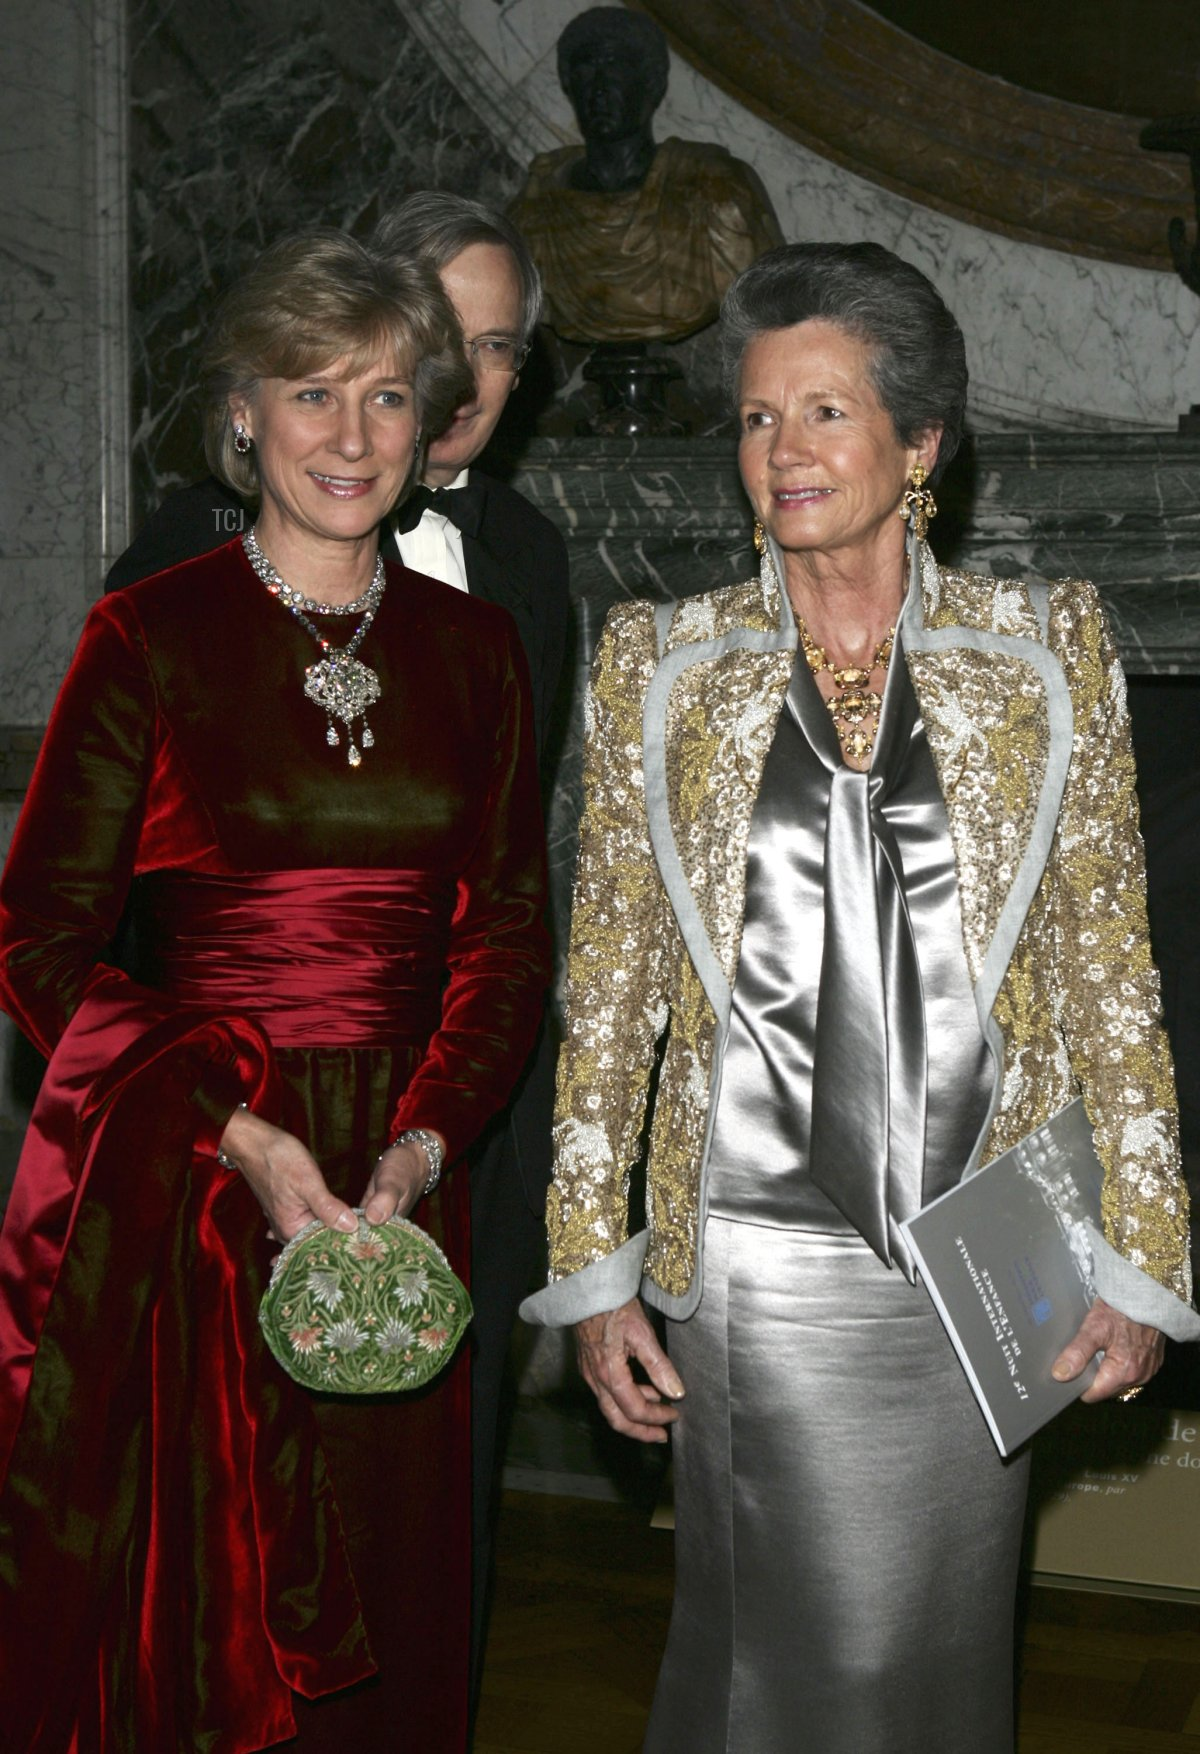 The Duchess of Gloucester and Anne-Aymone Giscard d'Estaing attend the Child Abuse Foundation Gala at the Castle of Versailles on December 6, 2004 in Versailles, France